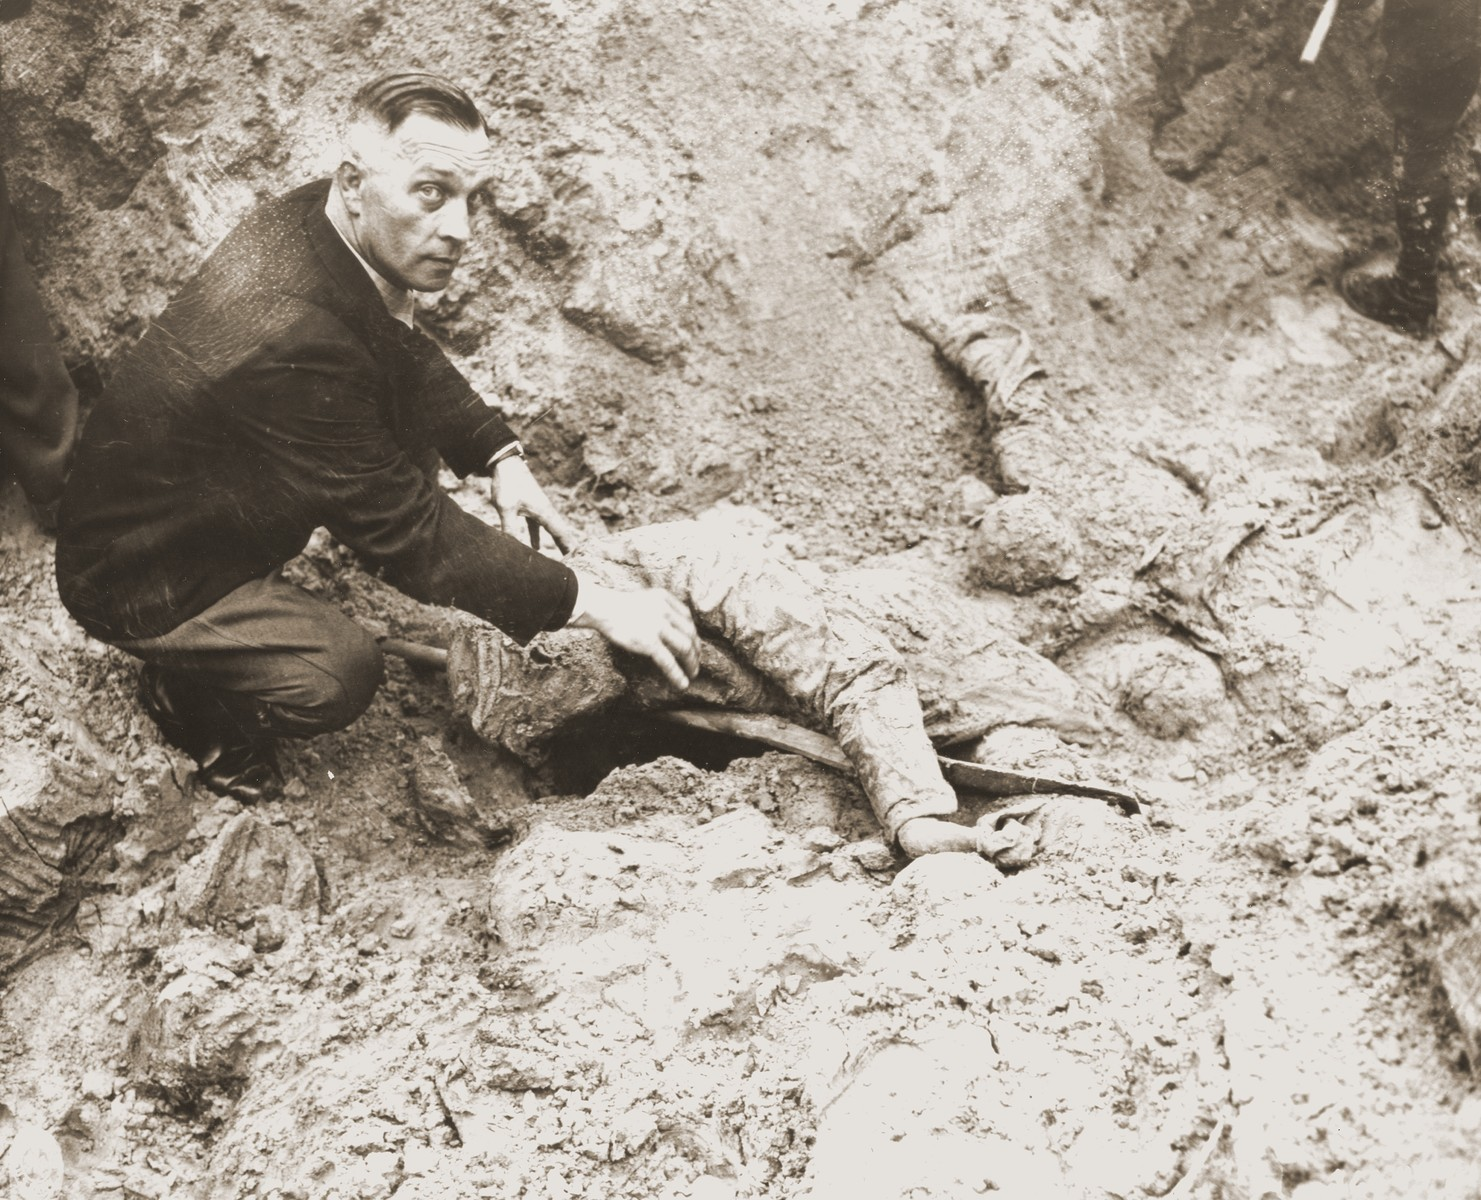 Handry Hundblut, formerly a major in the SA and wartime tank commandant, exhumes the body of one of 71 political prisoners from a mass grave on Wenzelnberg near Solingen-Ohligs.    The victims, most of whom were taken from Luettringhausen prison, were shot and buried by the Gestapo following orders to eliminate all Reich enemies just before the end of the war.